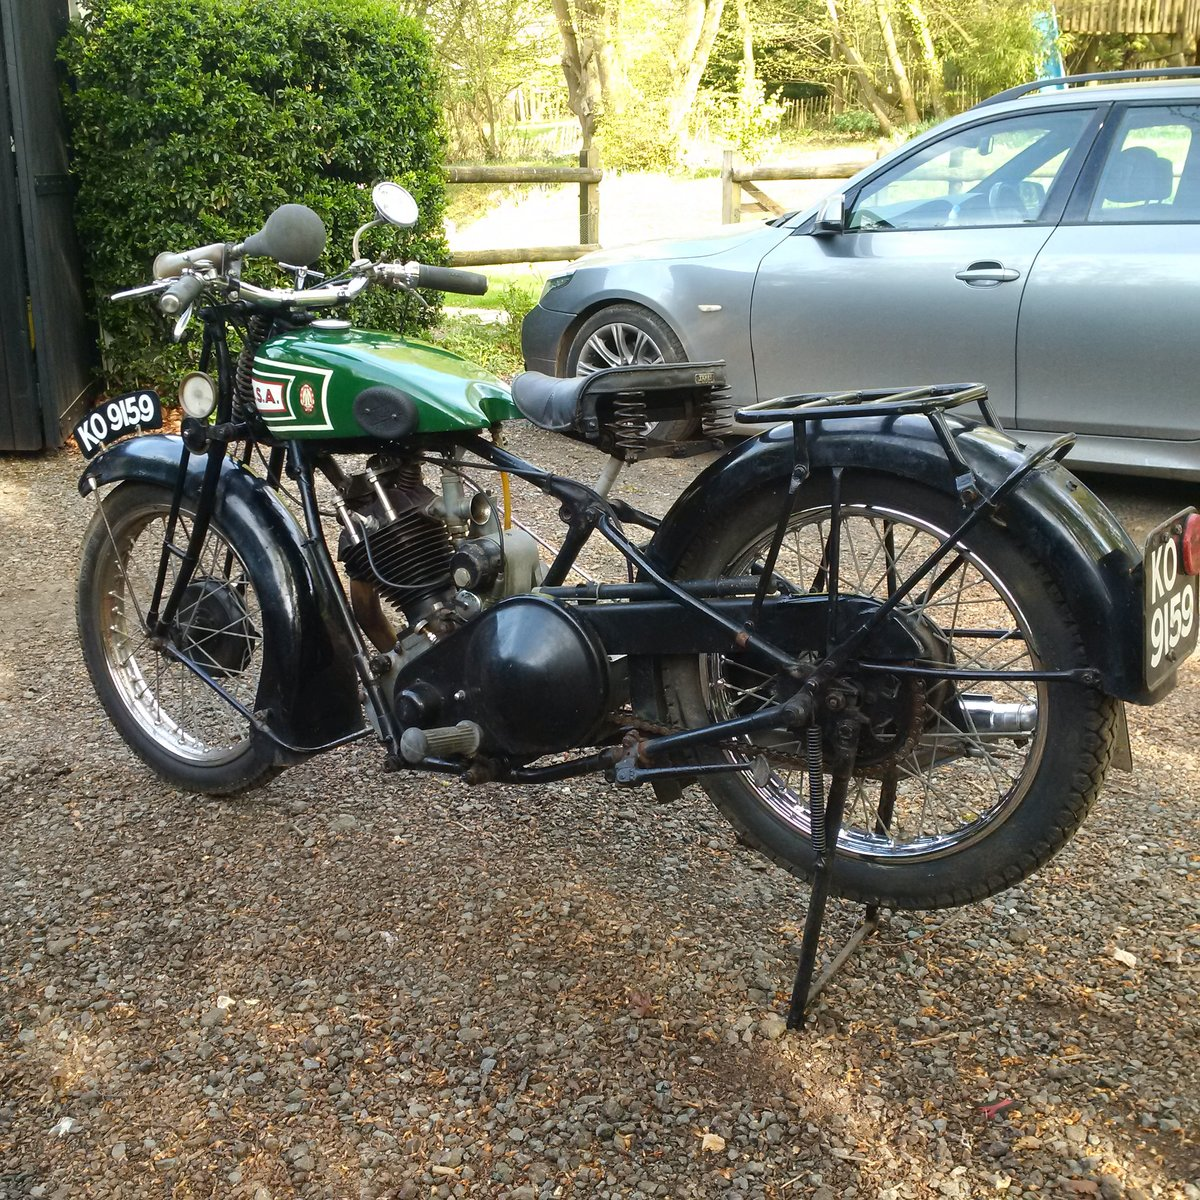 1928 From private classic collection - BSA Sloper For Sale (picture 2 of 3)